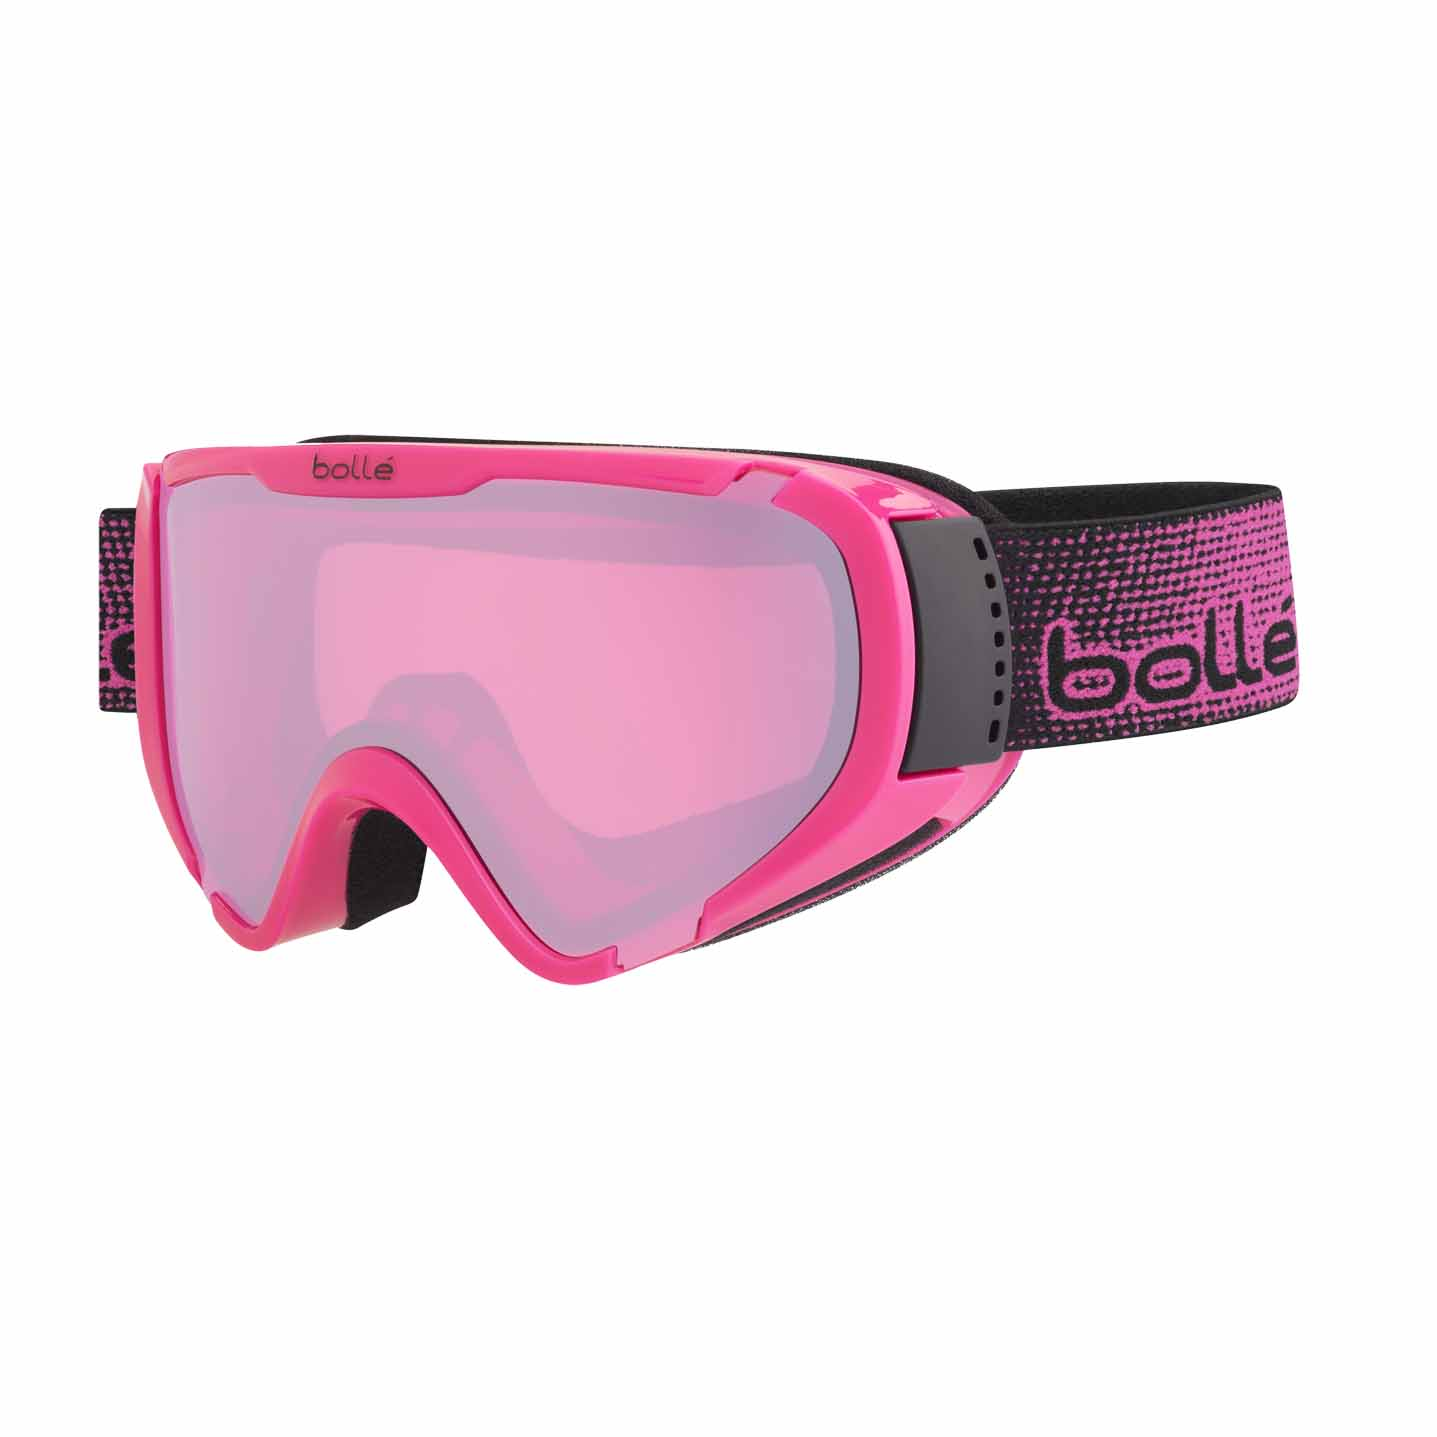 2017-18 Bolle Explorer OTG Ski And Snowboard Goggle shiny pink